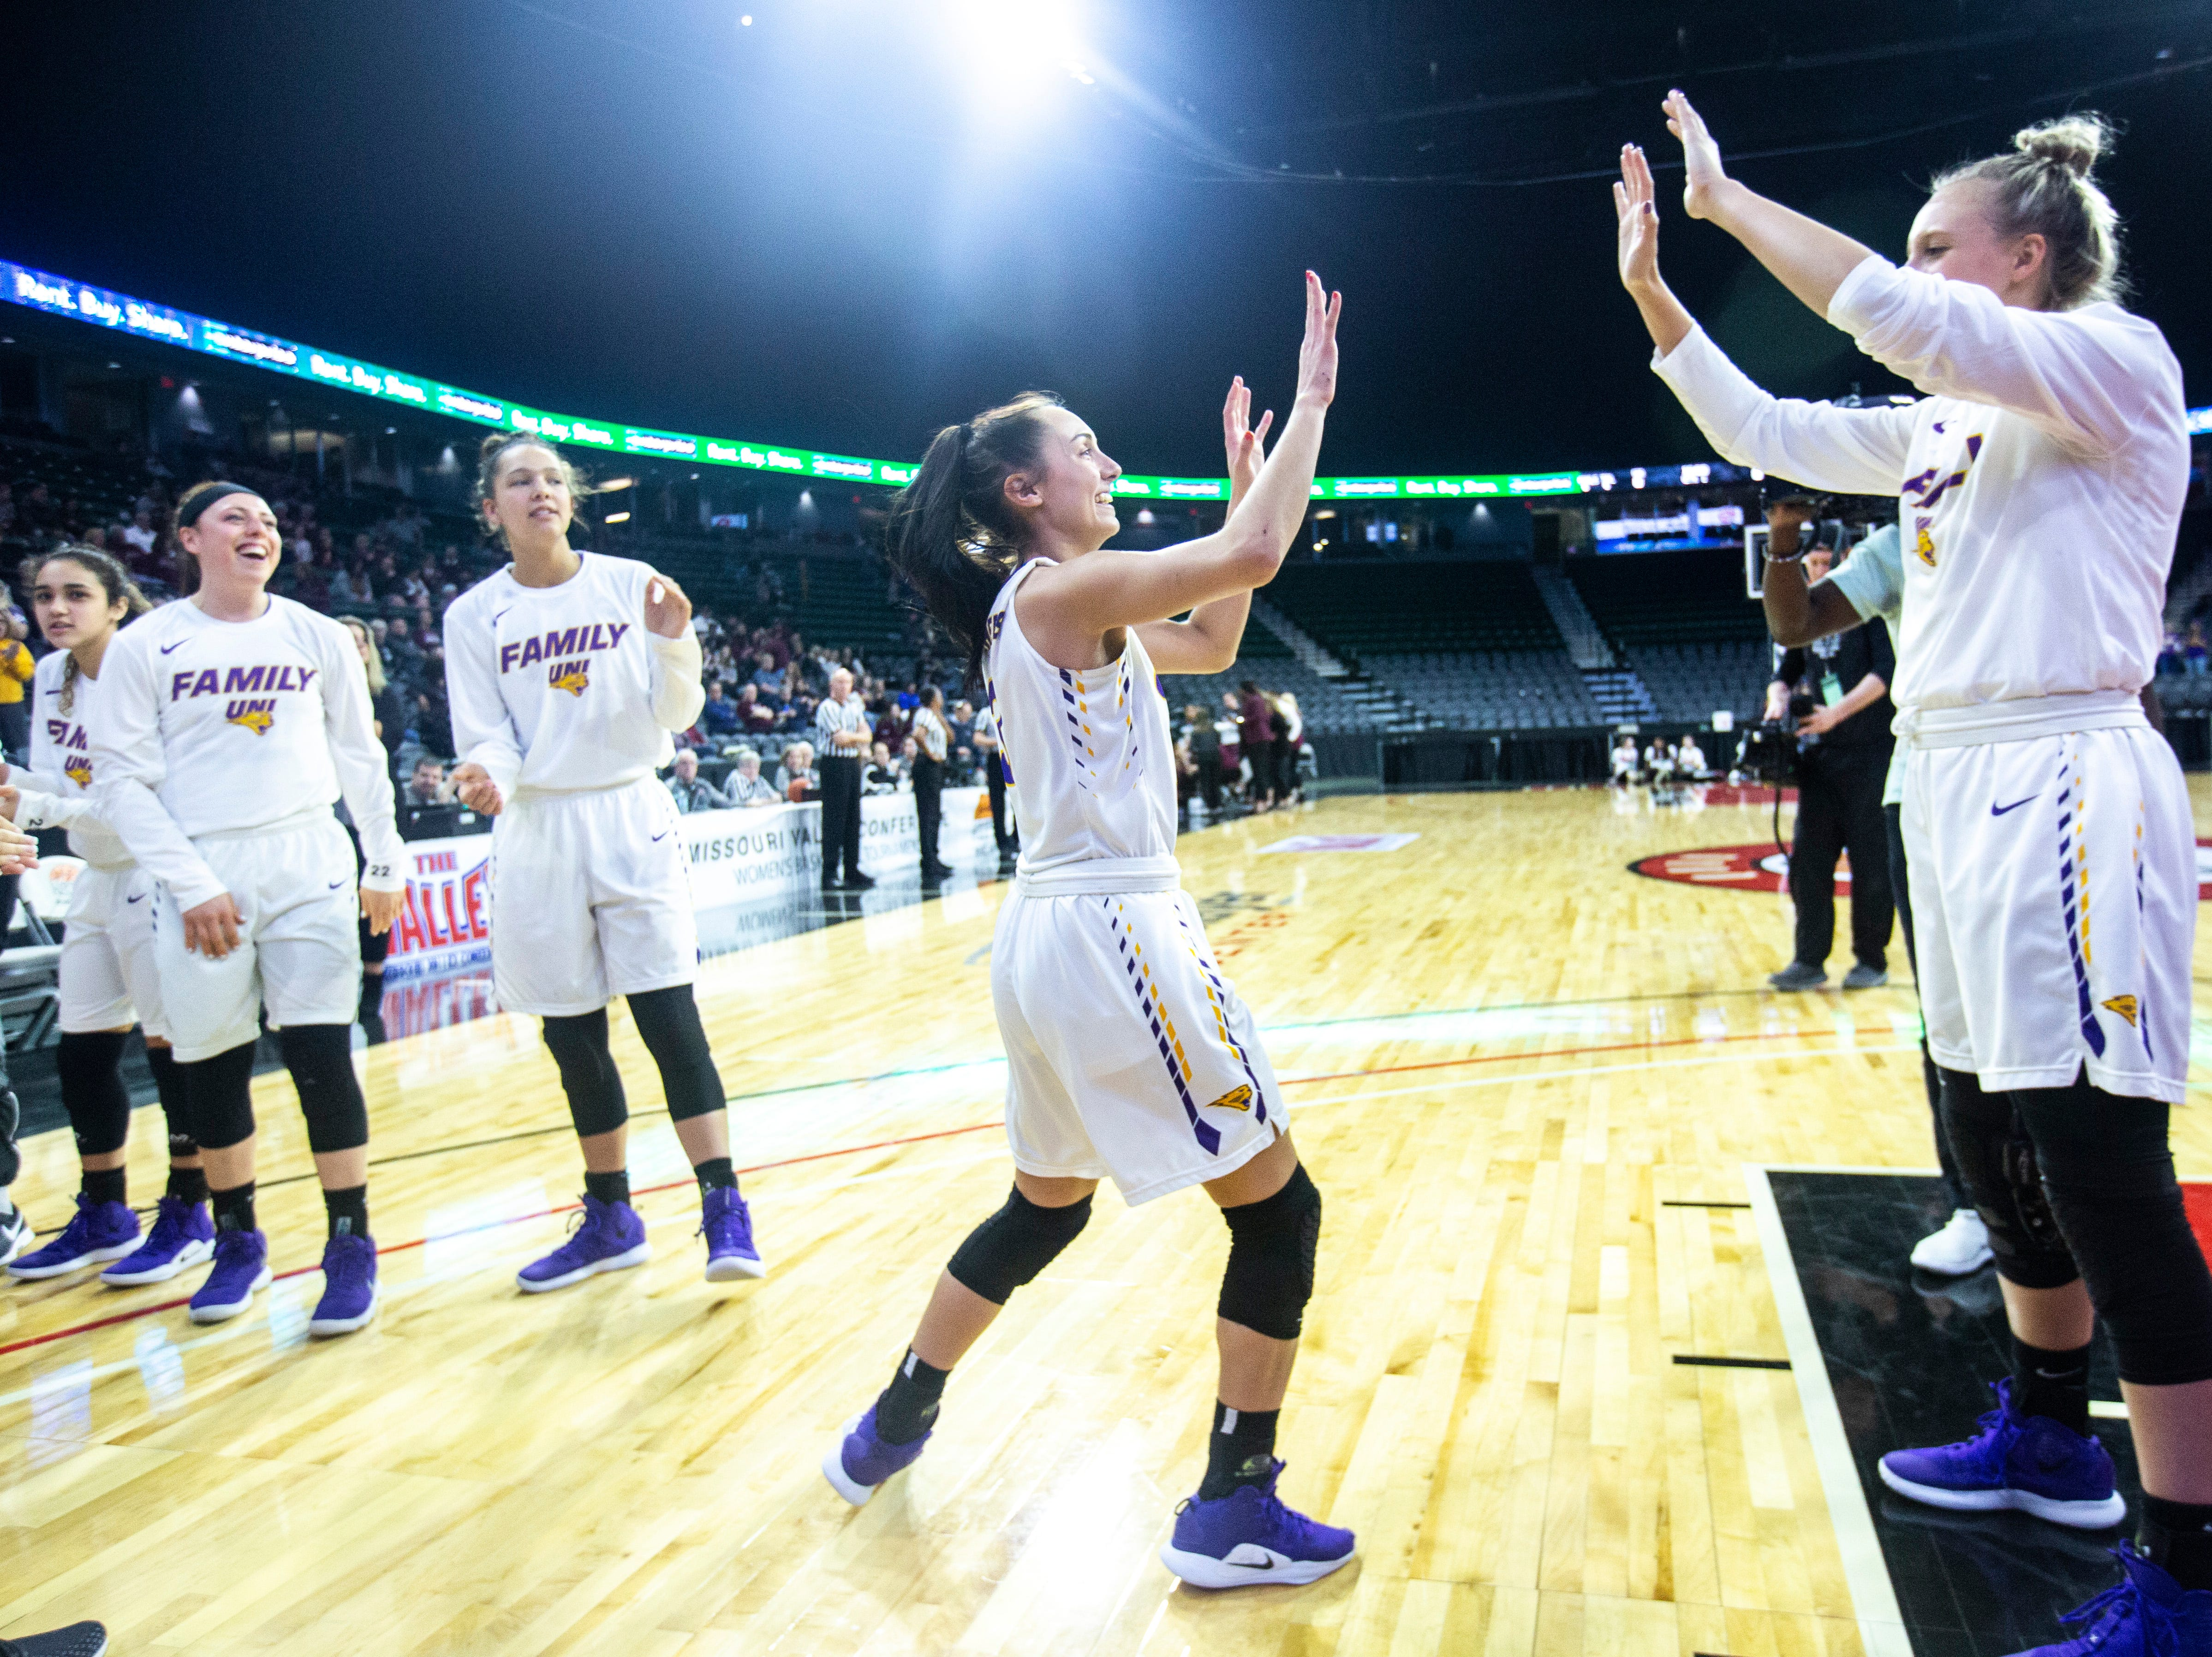 Northern Iowa guard Karli Rucker (3) is introduced during a NCAA Missouri Valley Conference women's basketball quarterfinal tournament game, Friday, March 15, 2019, at the TaxSlayer Center in Moline, Illinois.